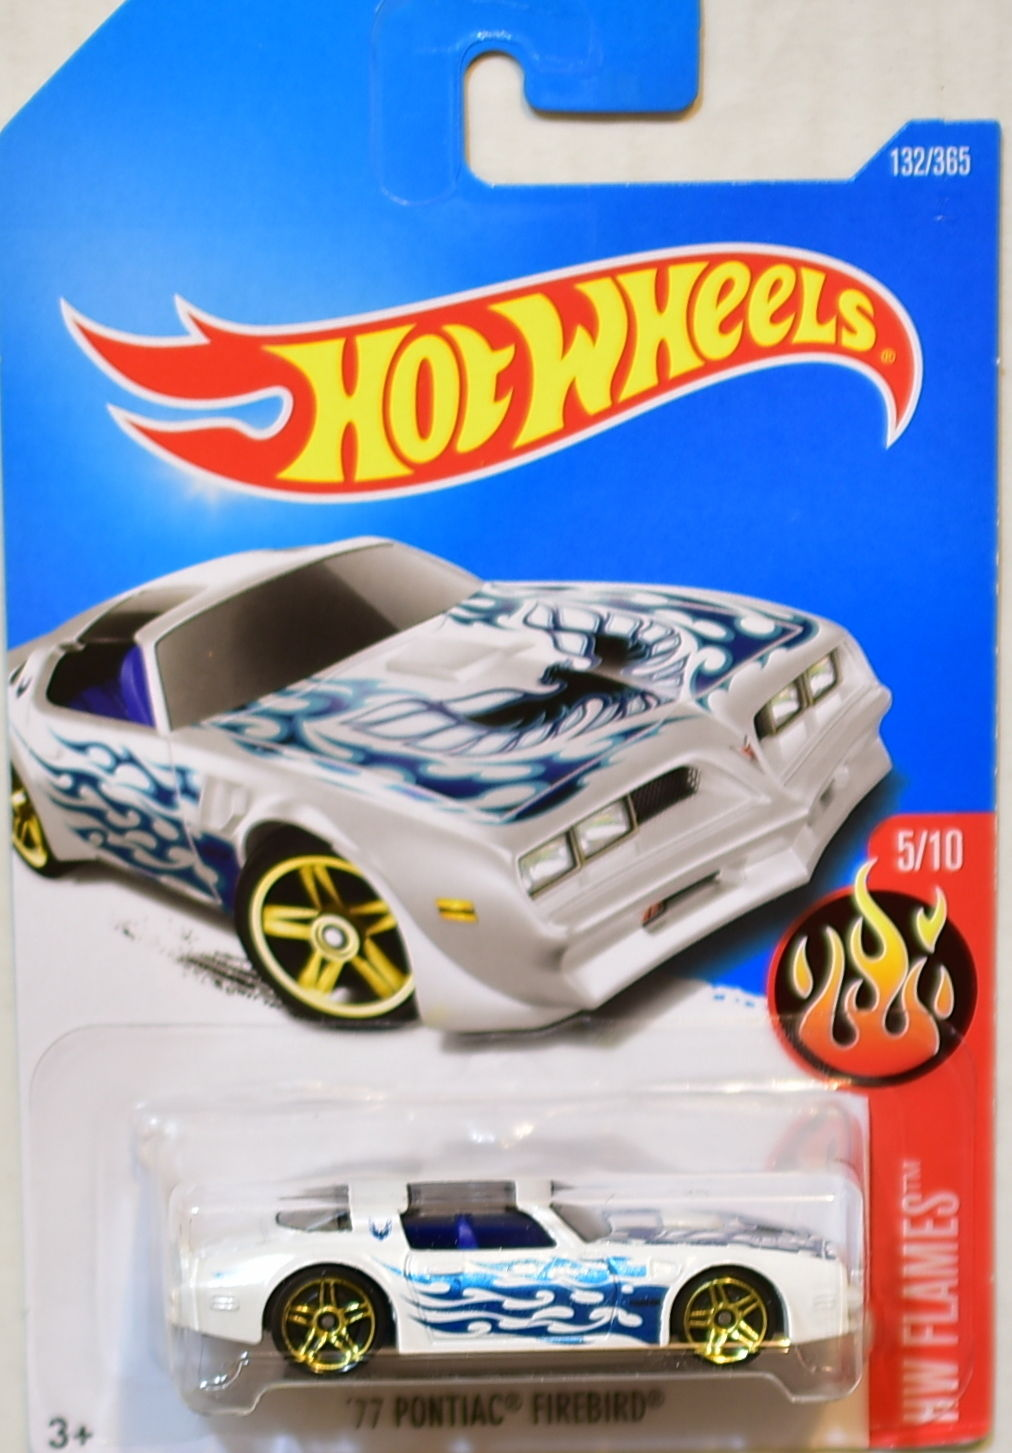 HOT WHEELS 2017 HW FLAMES '77 PONTIAC FIREBIRD #5/10 WHITE